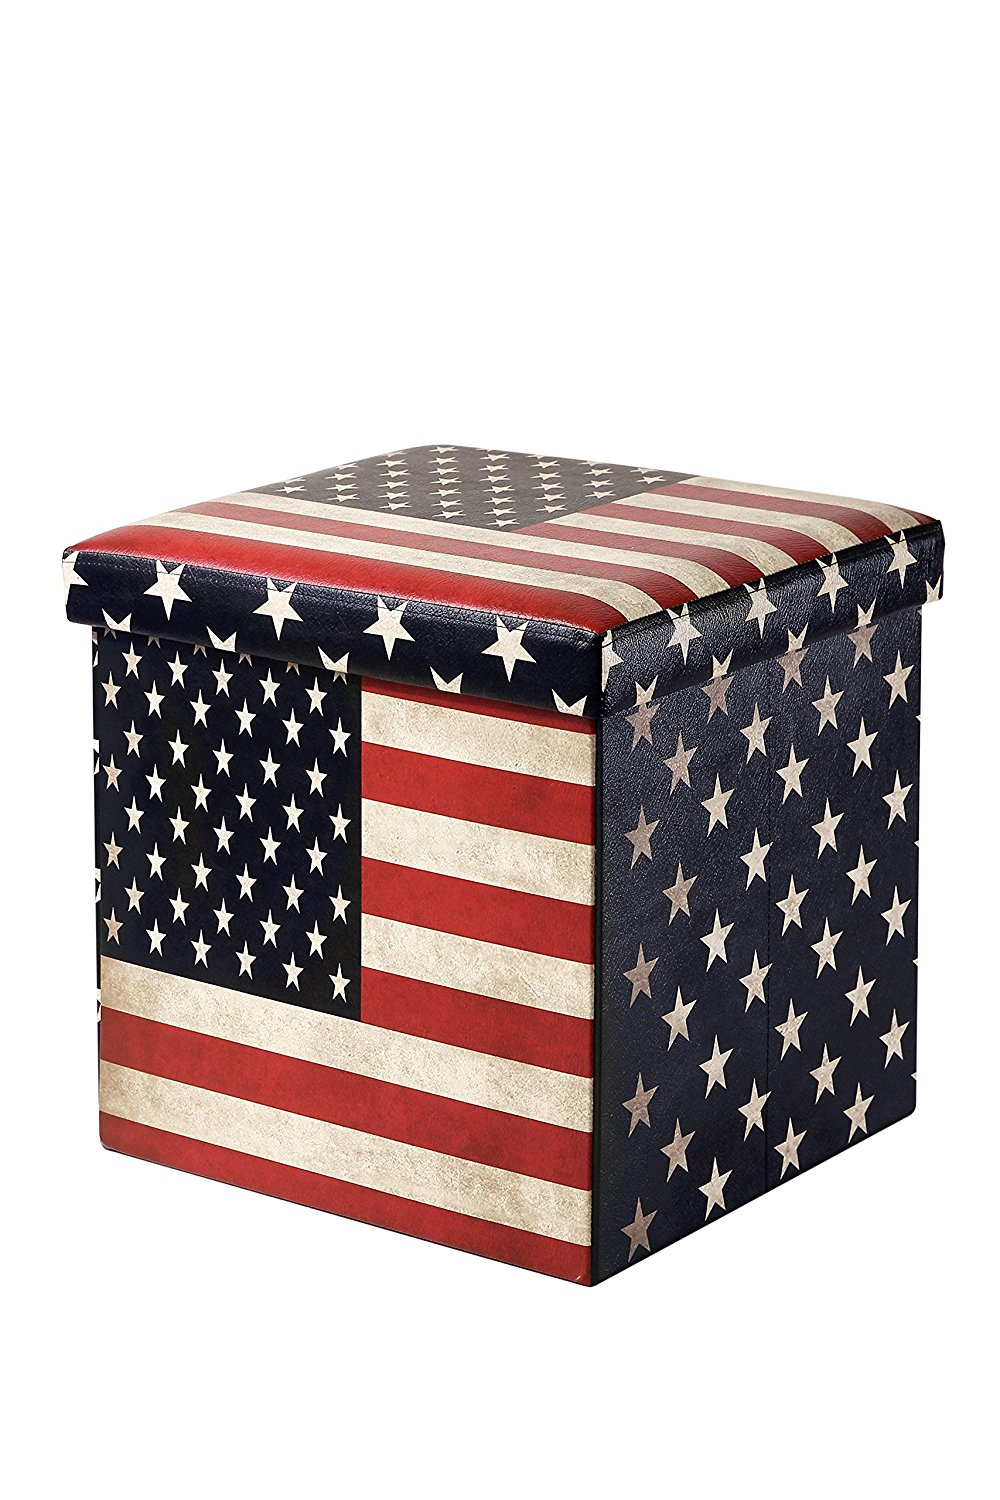 Ottomans and Cubes | Leather Ottoman Cube | Storage Cube Ottoman